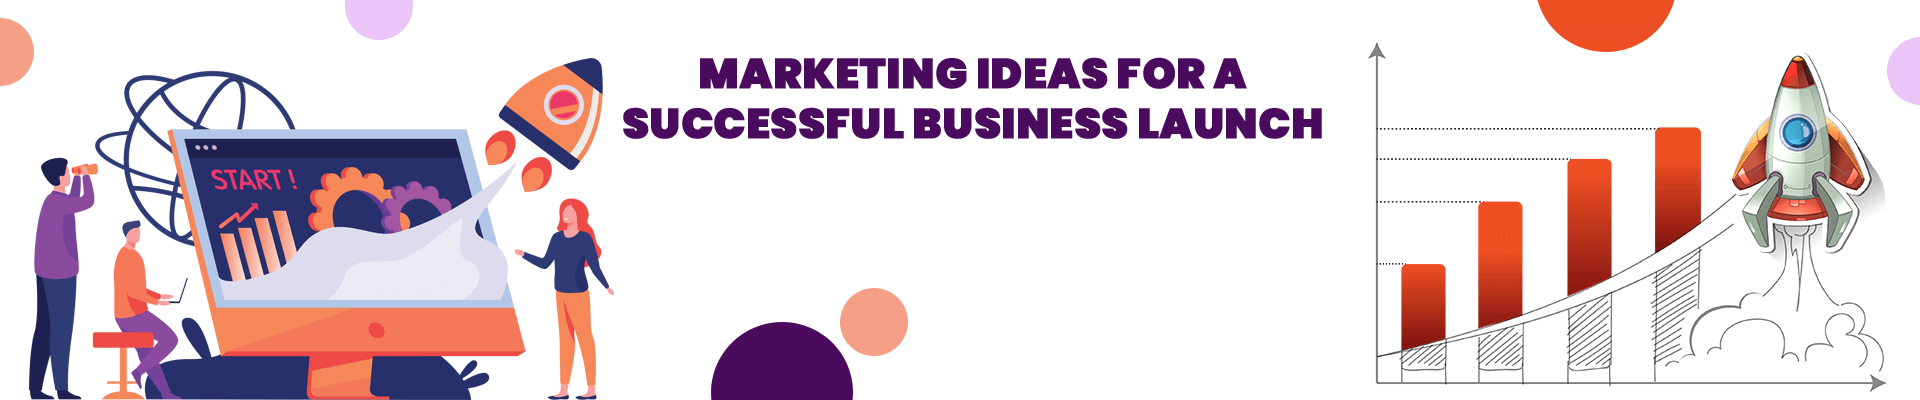 Best 10 Marketing Ideas for a Successful Business Launch [2021]